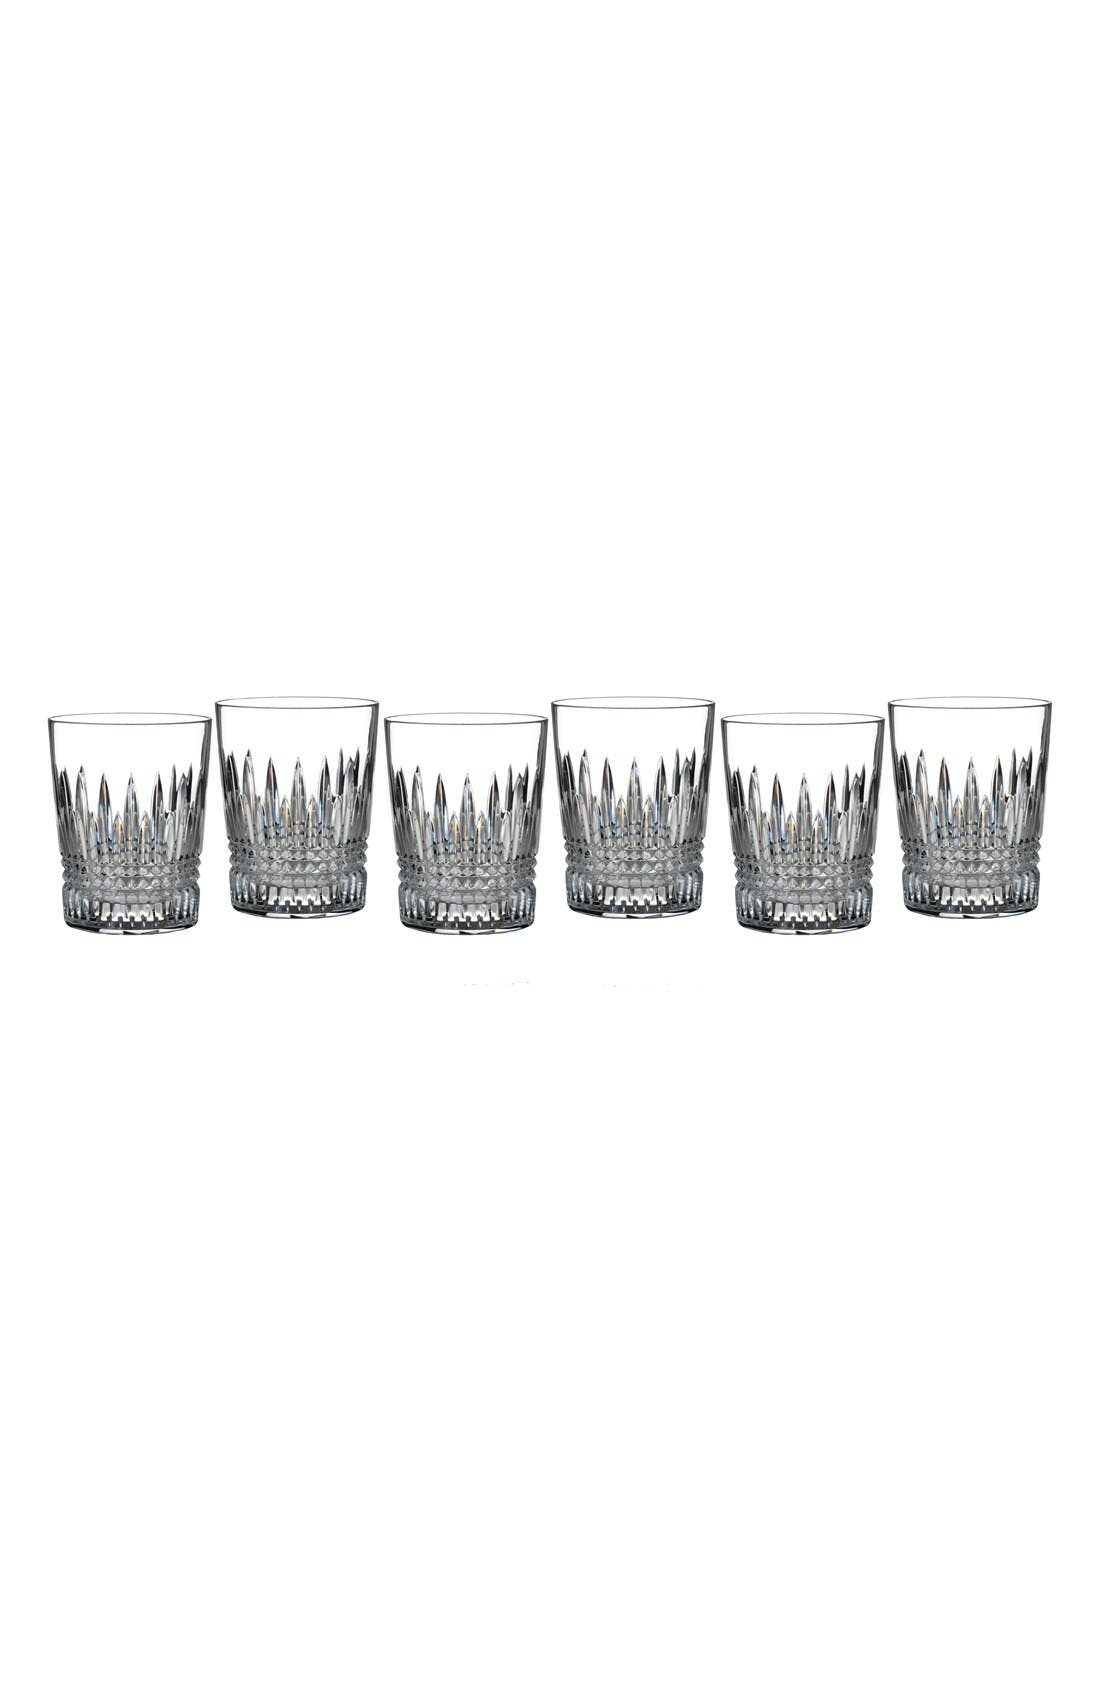 Main Image - Waterford 'Lismore Diamond' Lead Crystal Double Old Fashioned Glasses (Set of 6)